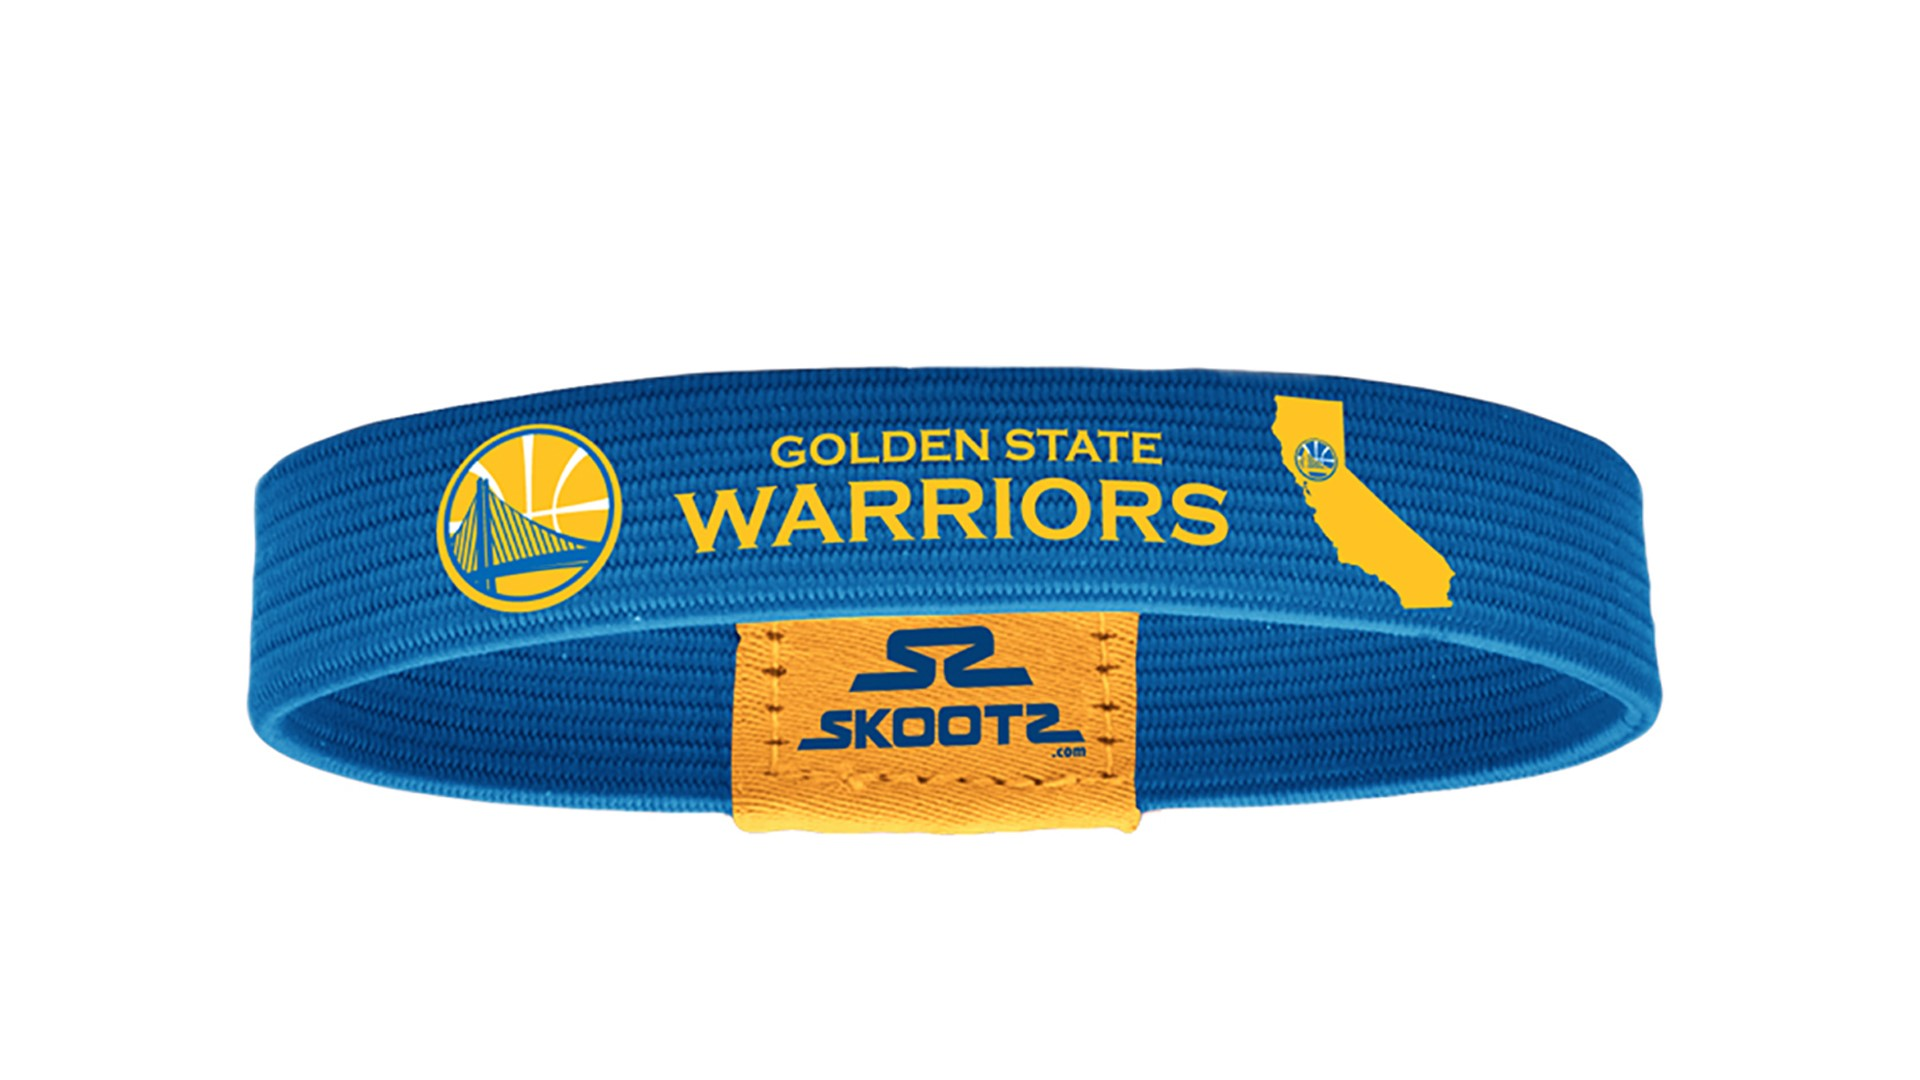 Golden State Warriors 2